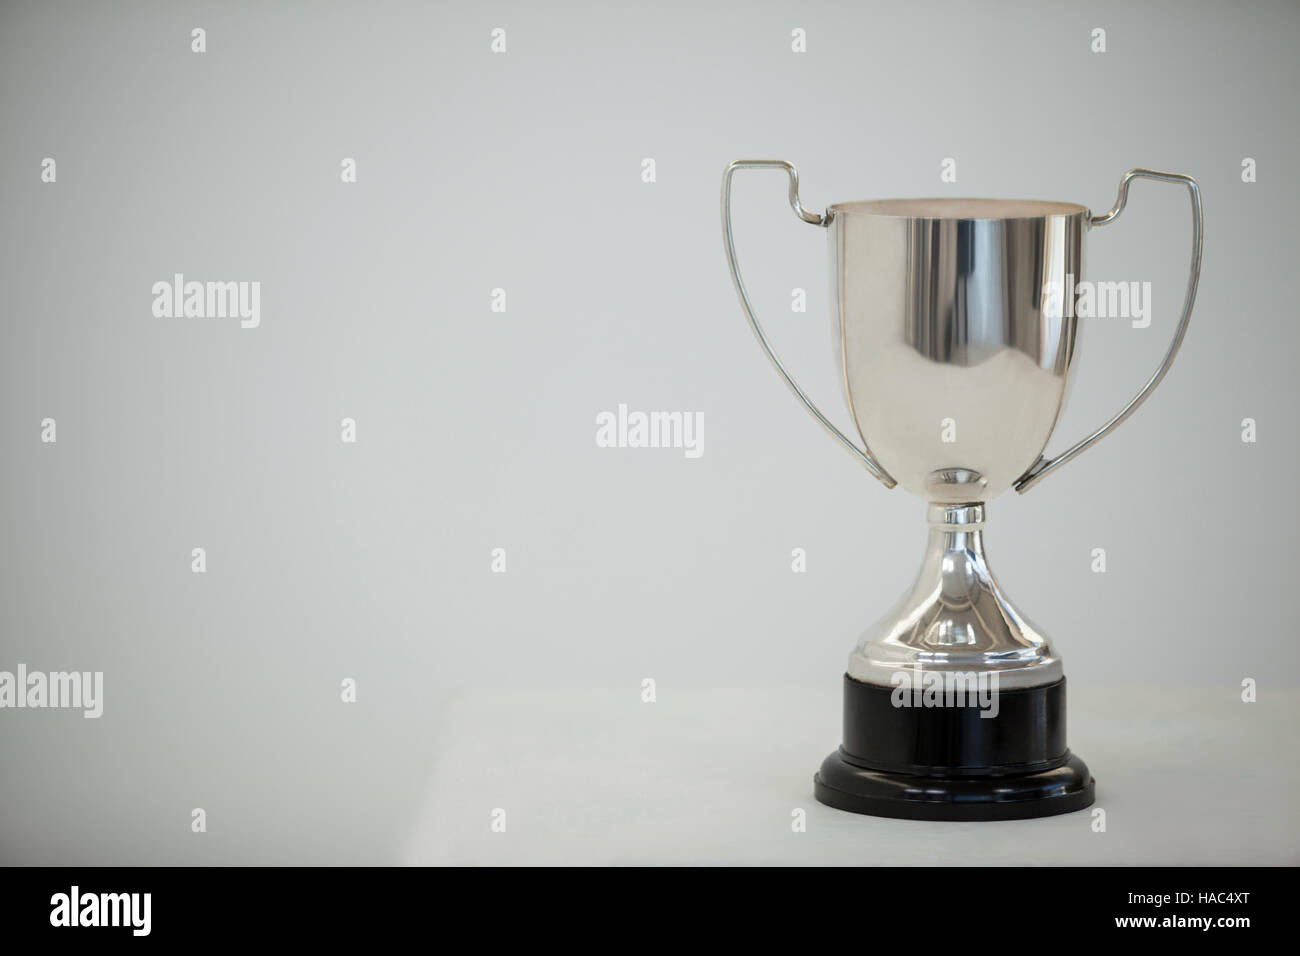 Silver trophy on grey background - Stock Image